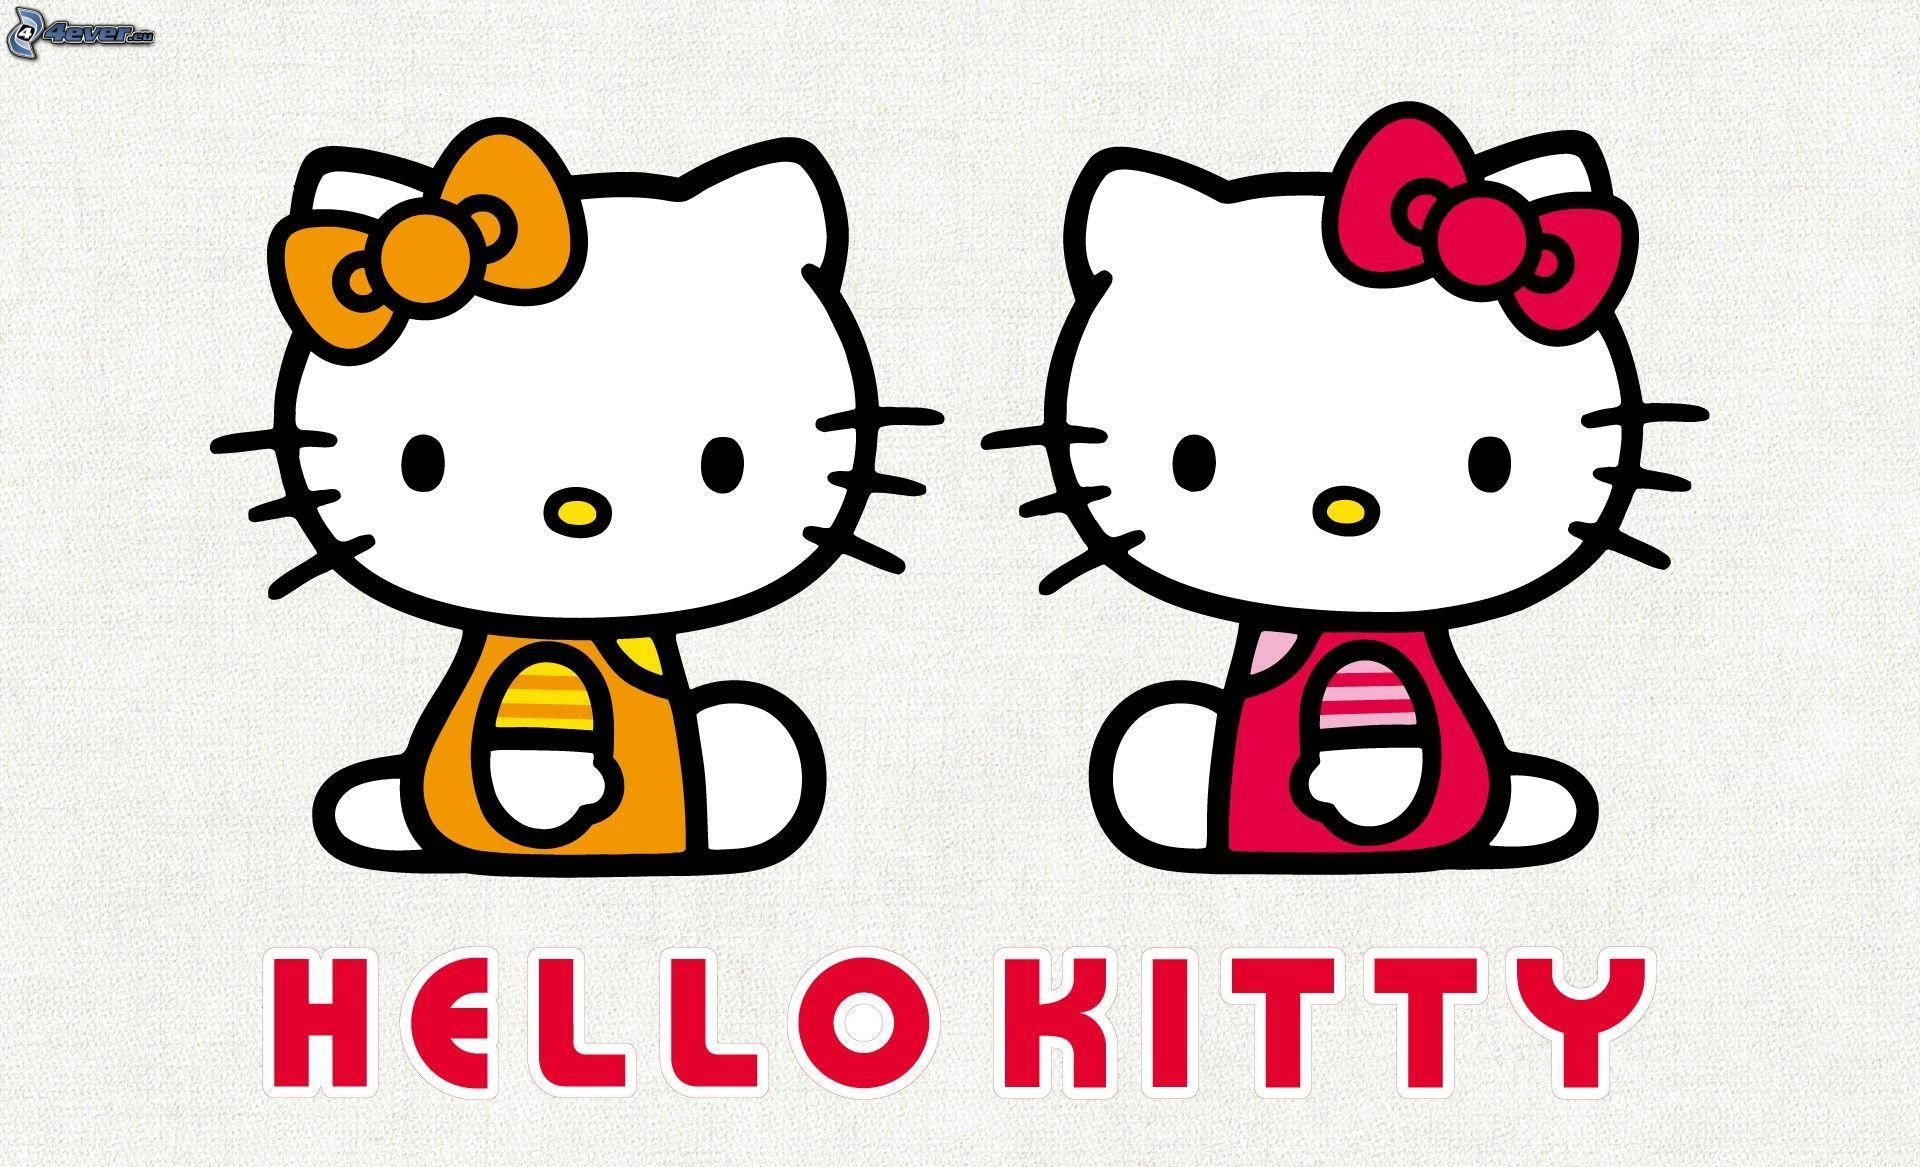 Fondos-HD-de-hello-kitty-Fondosdepantalla.top (11)